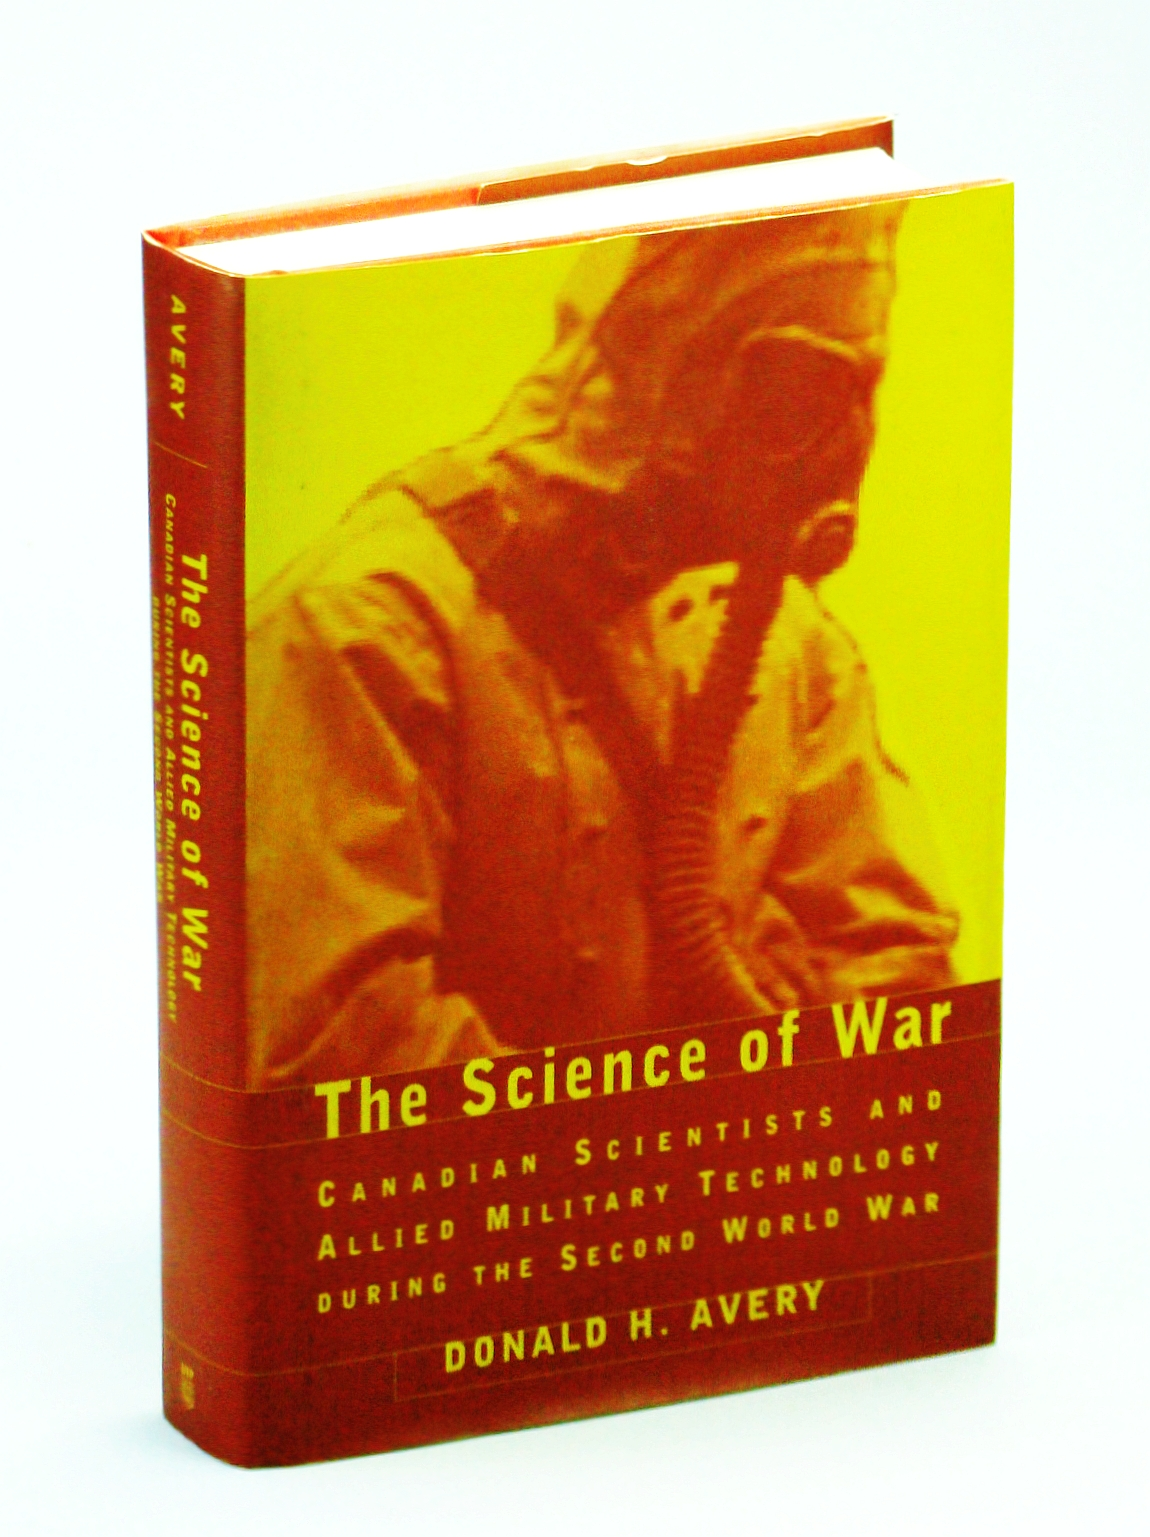 Image for The Science of War: Canadian Scientists and Allied Military Technology during the Second World War